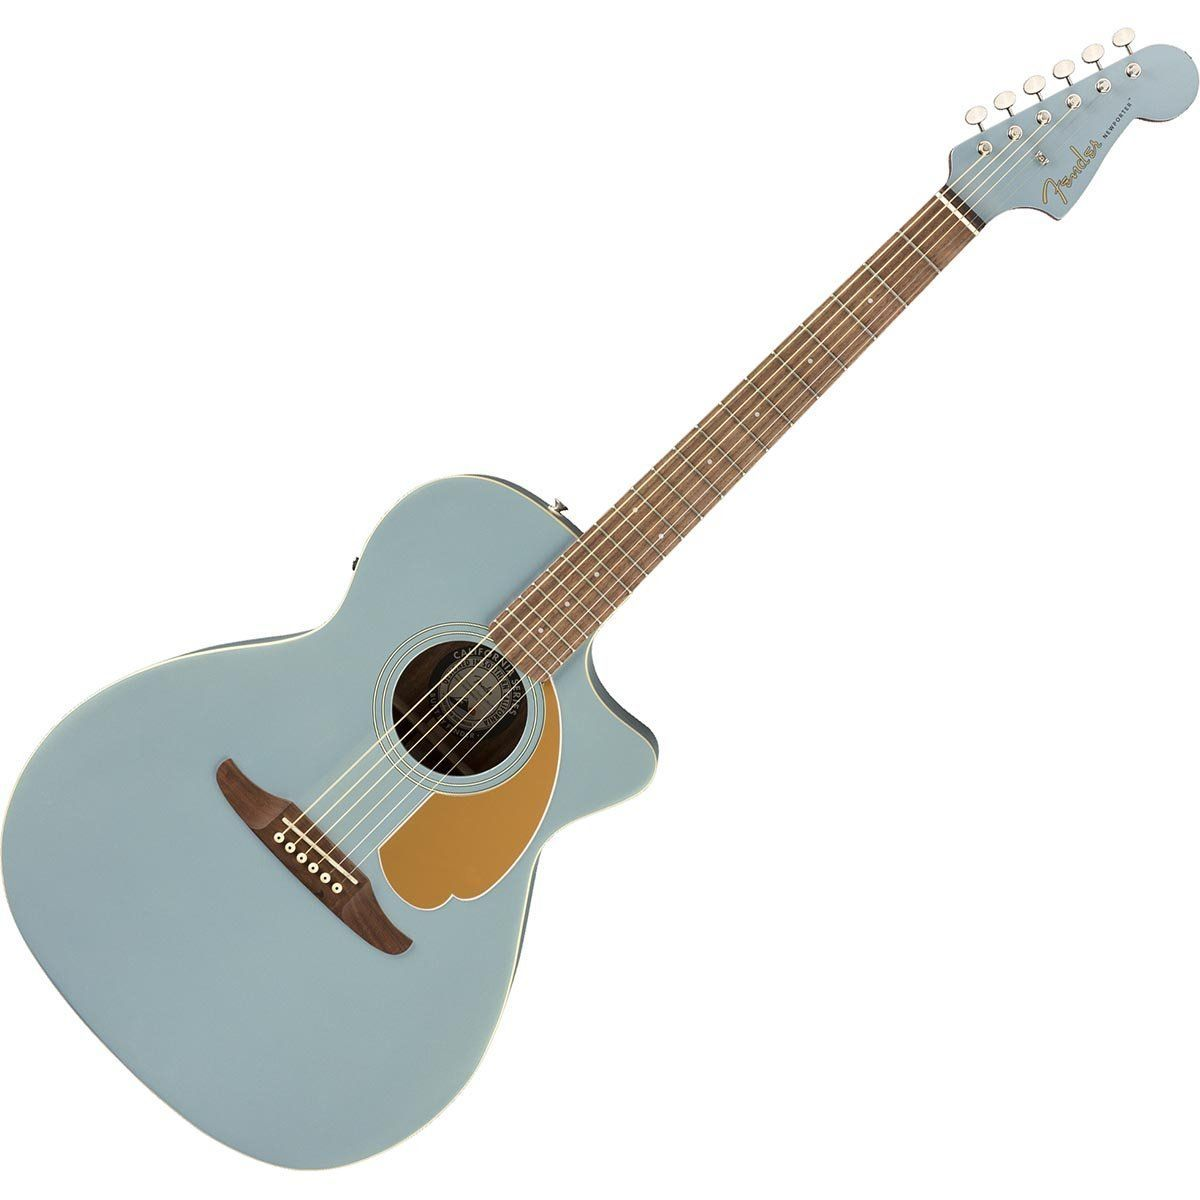 Acoustic Guitars 510243832785517694 In 2020 Electro Acoustic Guitar Fender Acoustic Guitar Acoustic Guitar